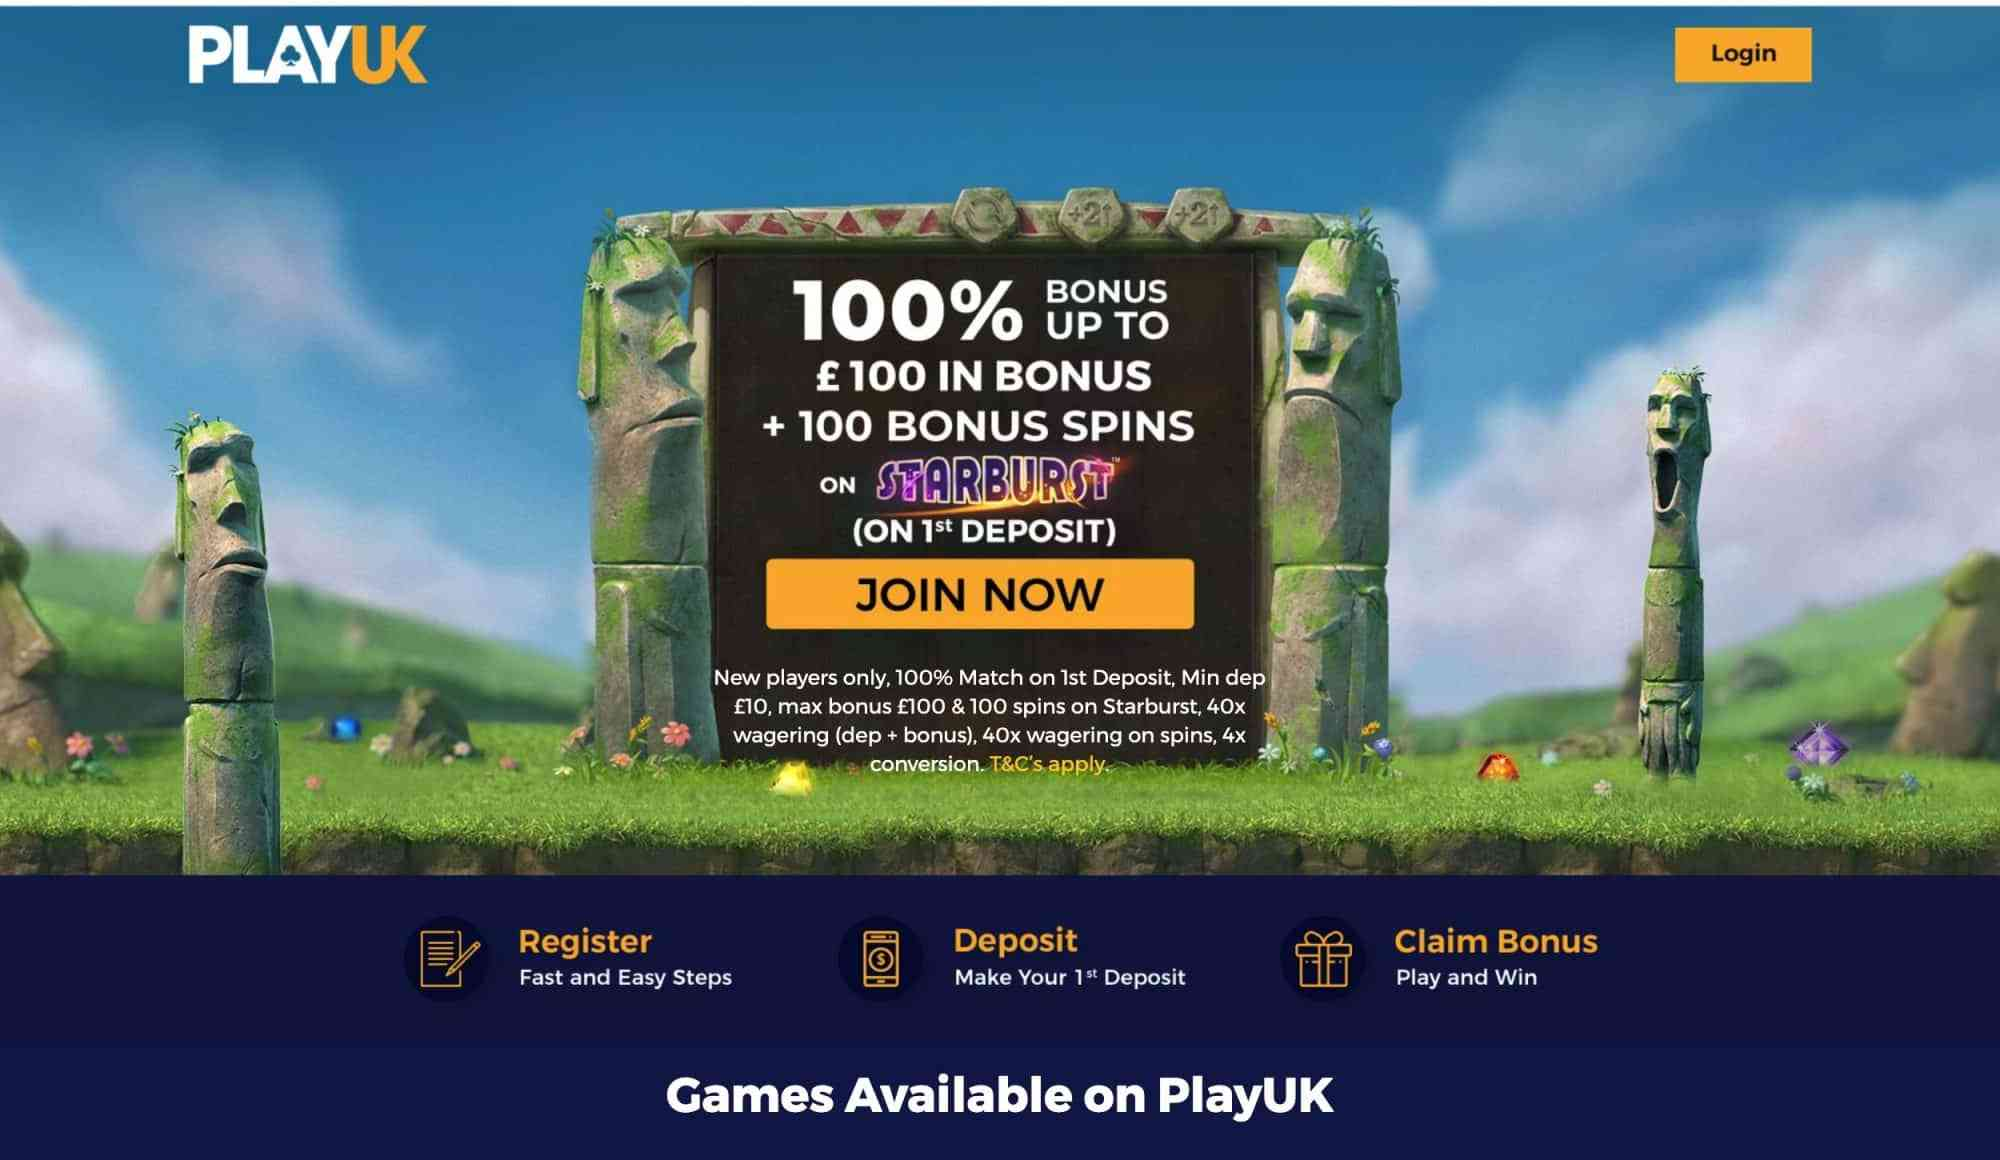 Play UK Casino - 100 free spins plus 100% match bonus!